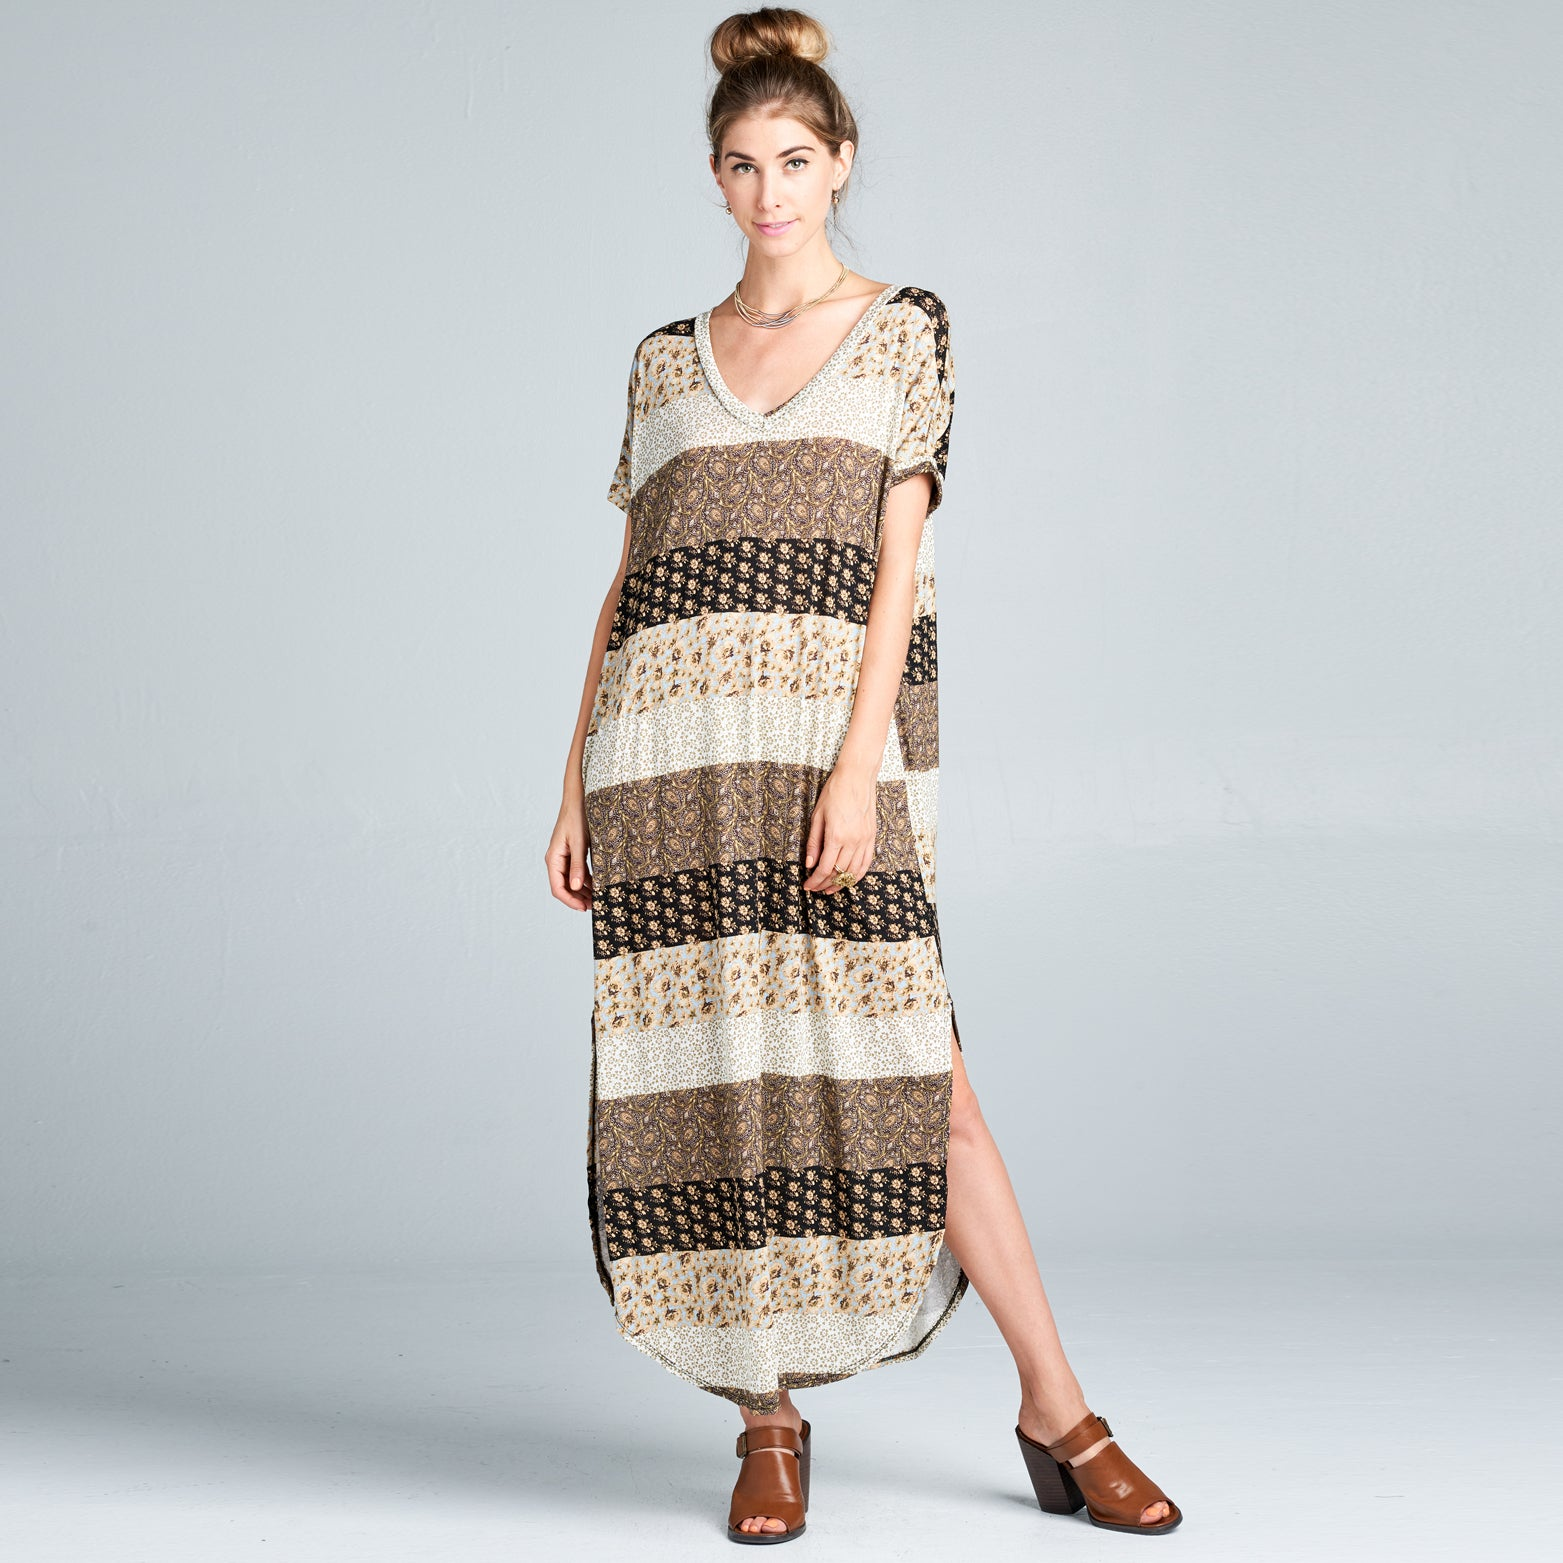 RL Brown Block Maxi Dress